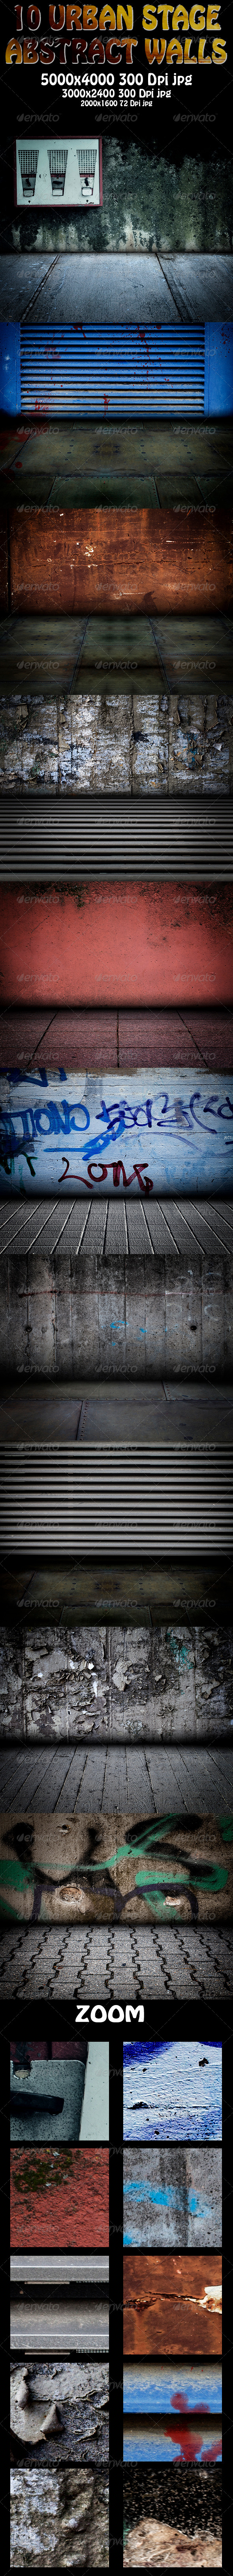 GraphicRiver 10 Urban Stage Abstract Walls 5848862